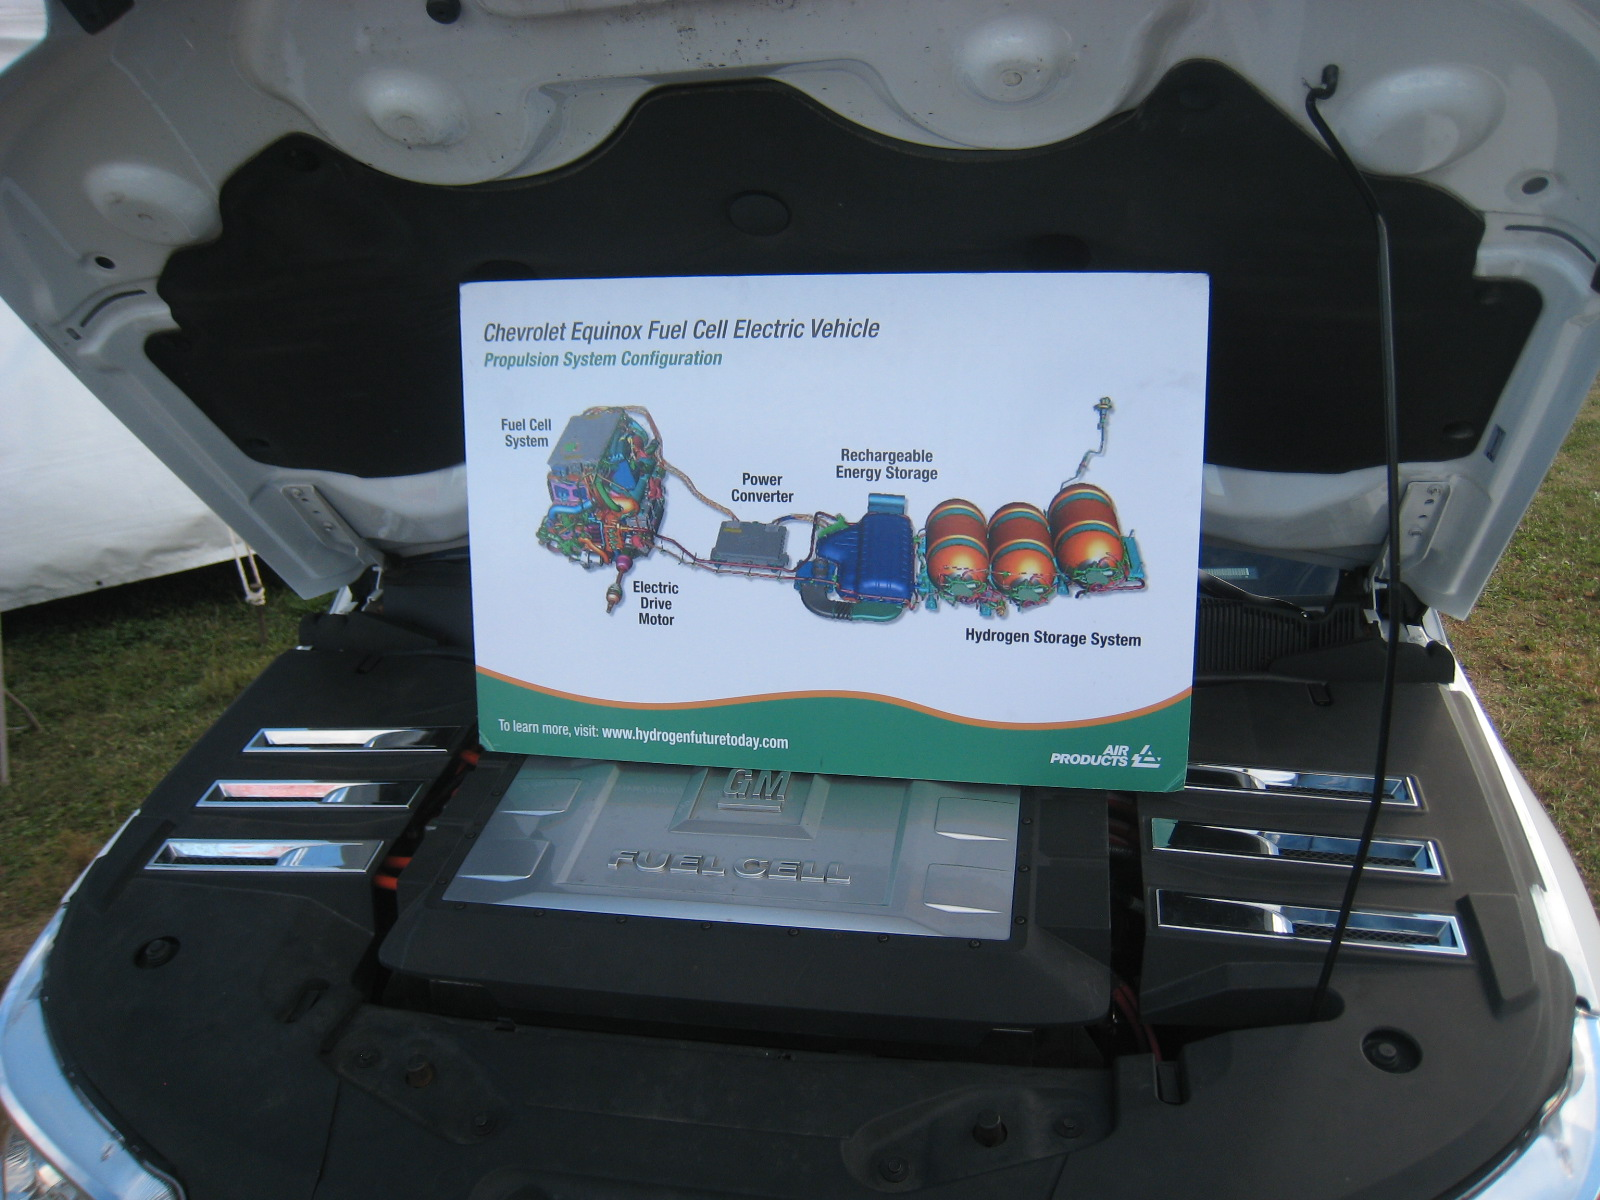 placard describing components of hydrogen-powered engine